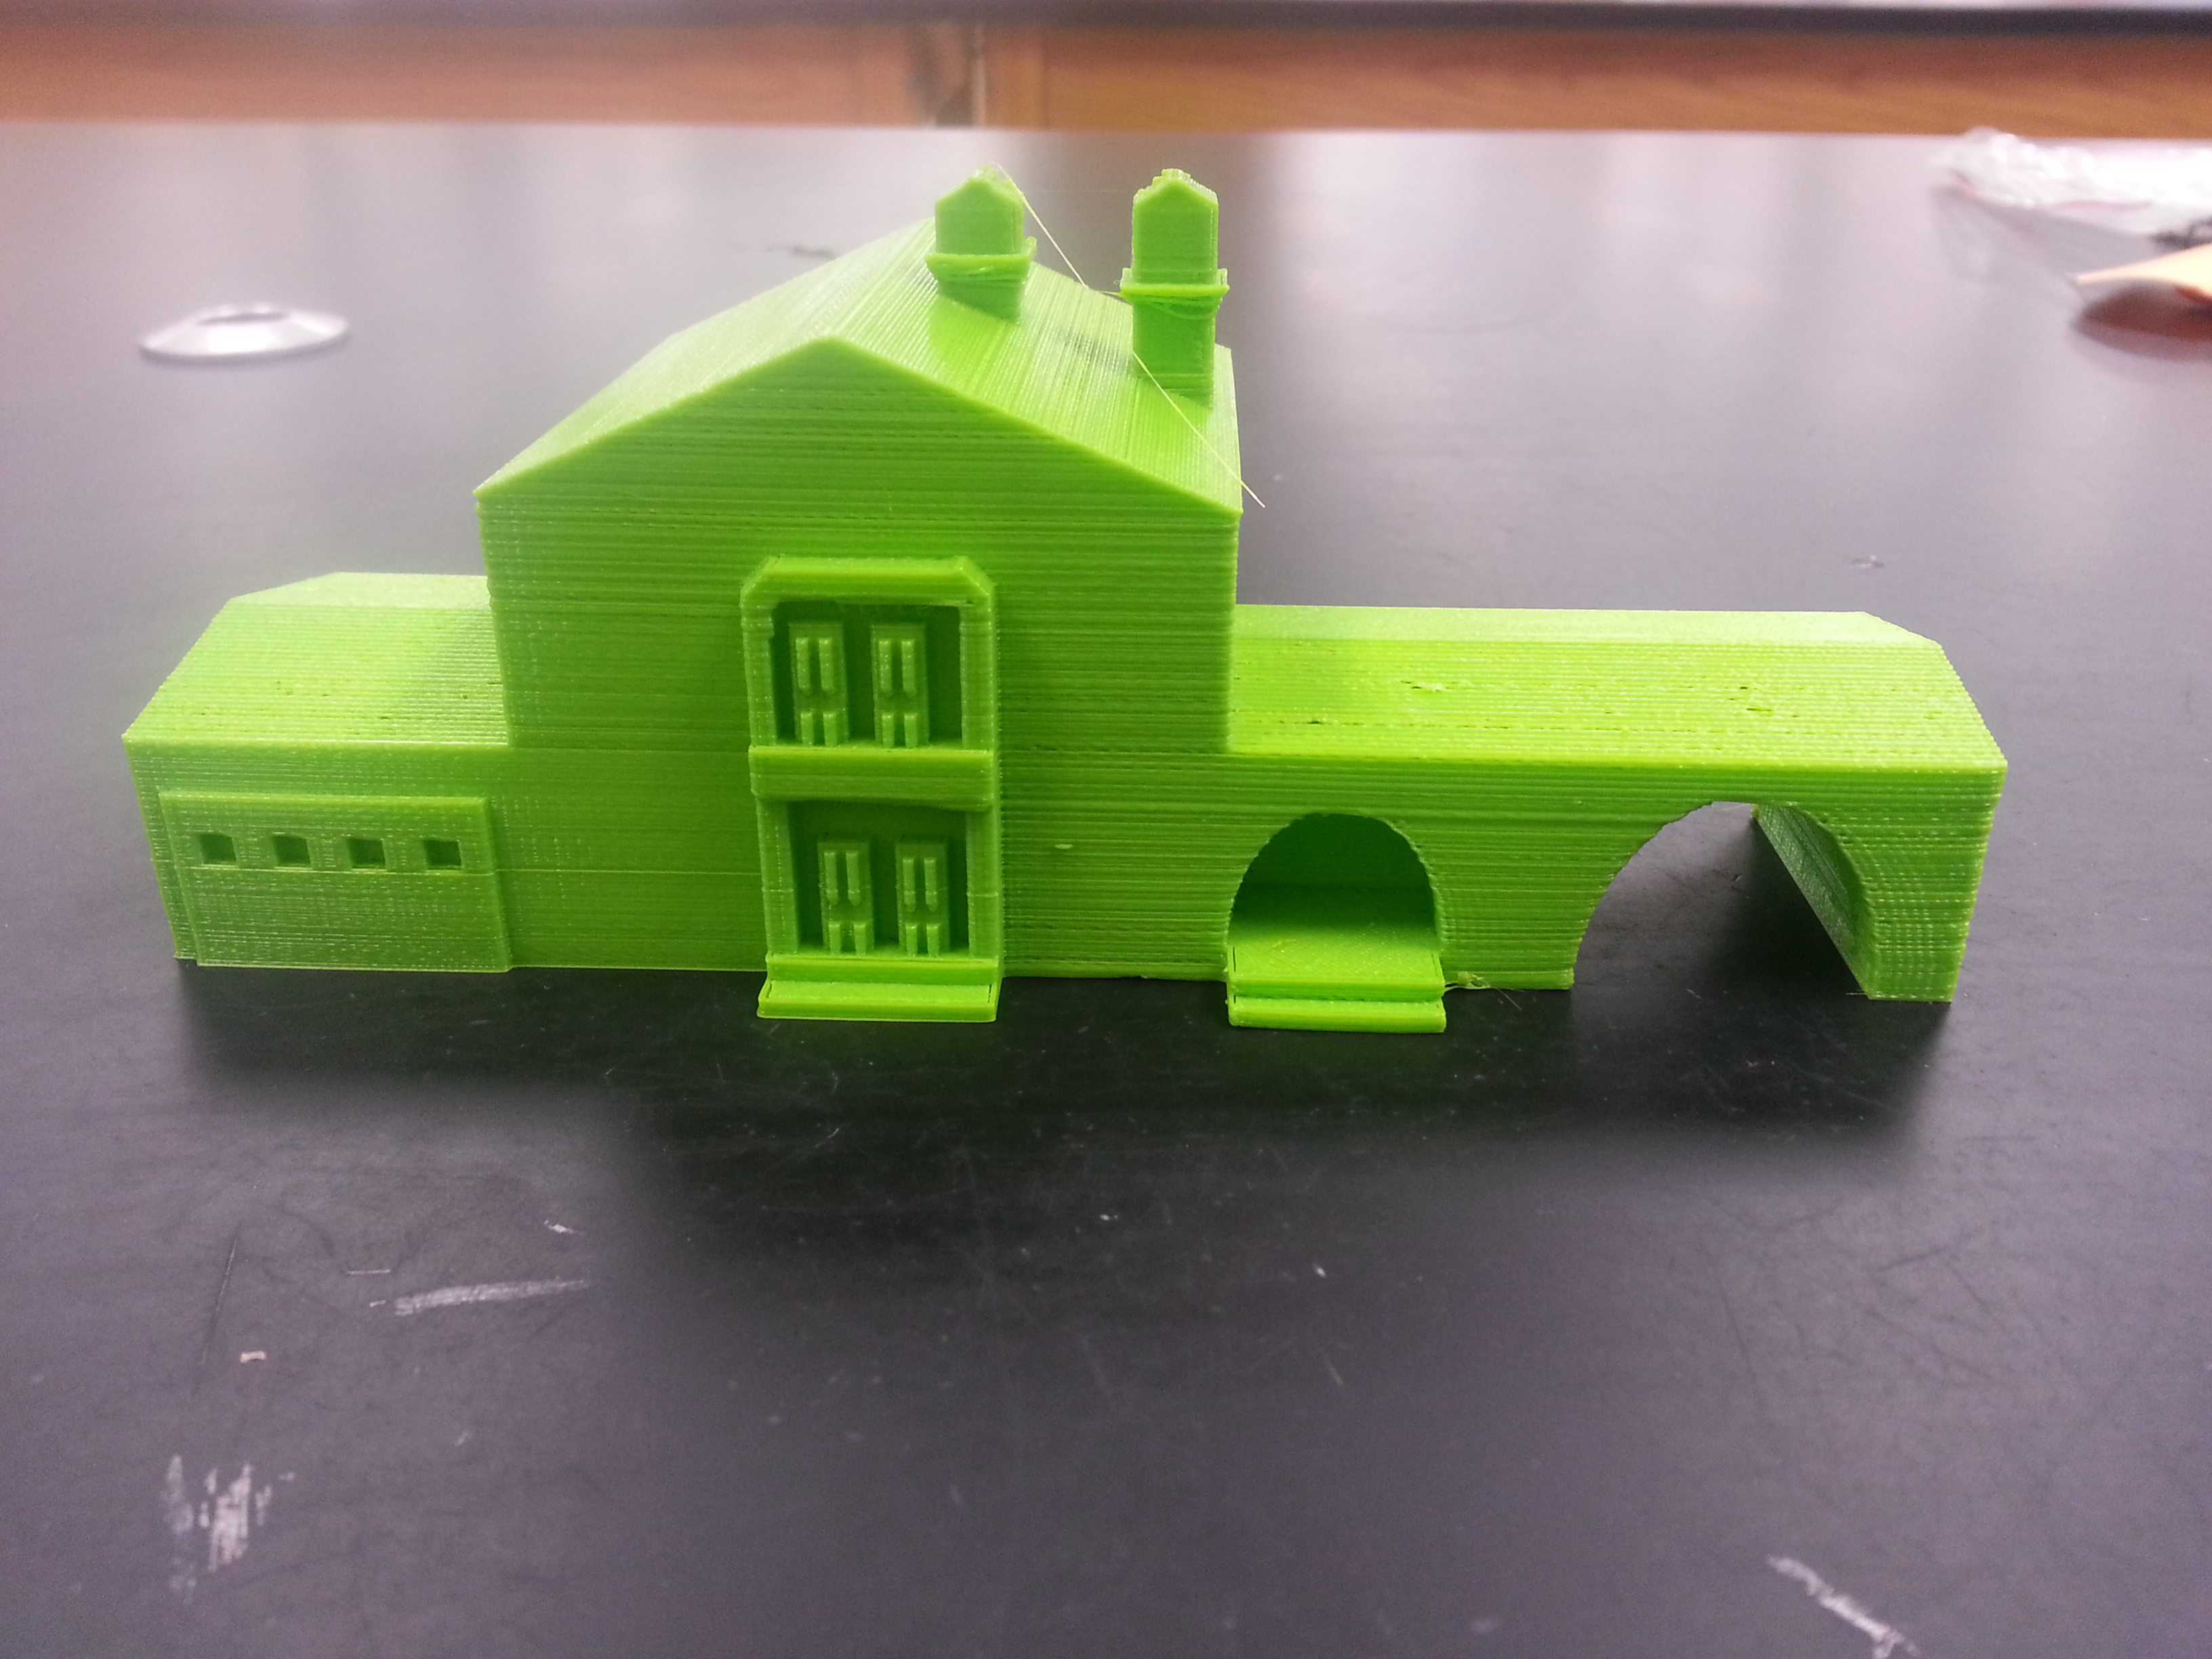 Michael's House GTA5 by mfritz - Thingiverse